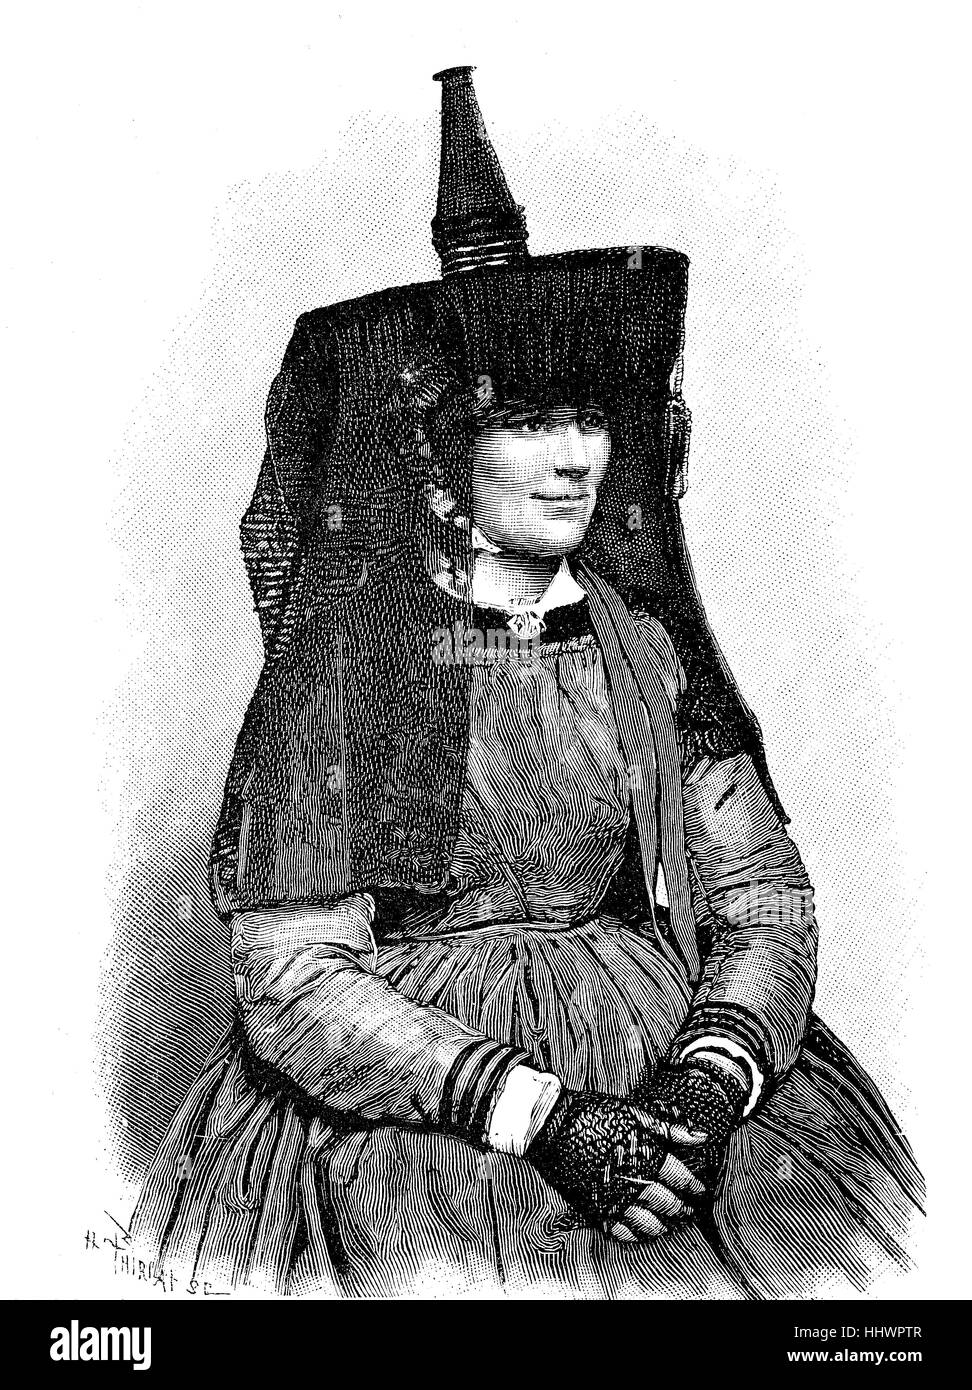 French folklore, Costume of the peasant woman from Bresse, historical image or illustration, published 1890, digital - Stock Image